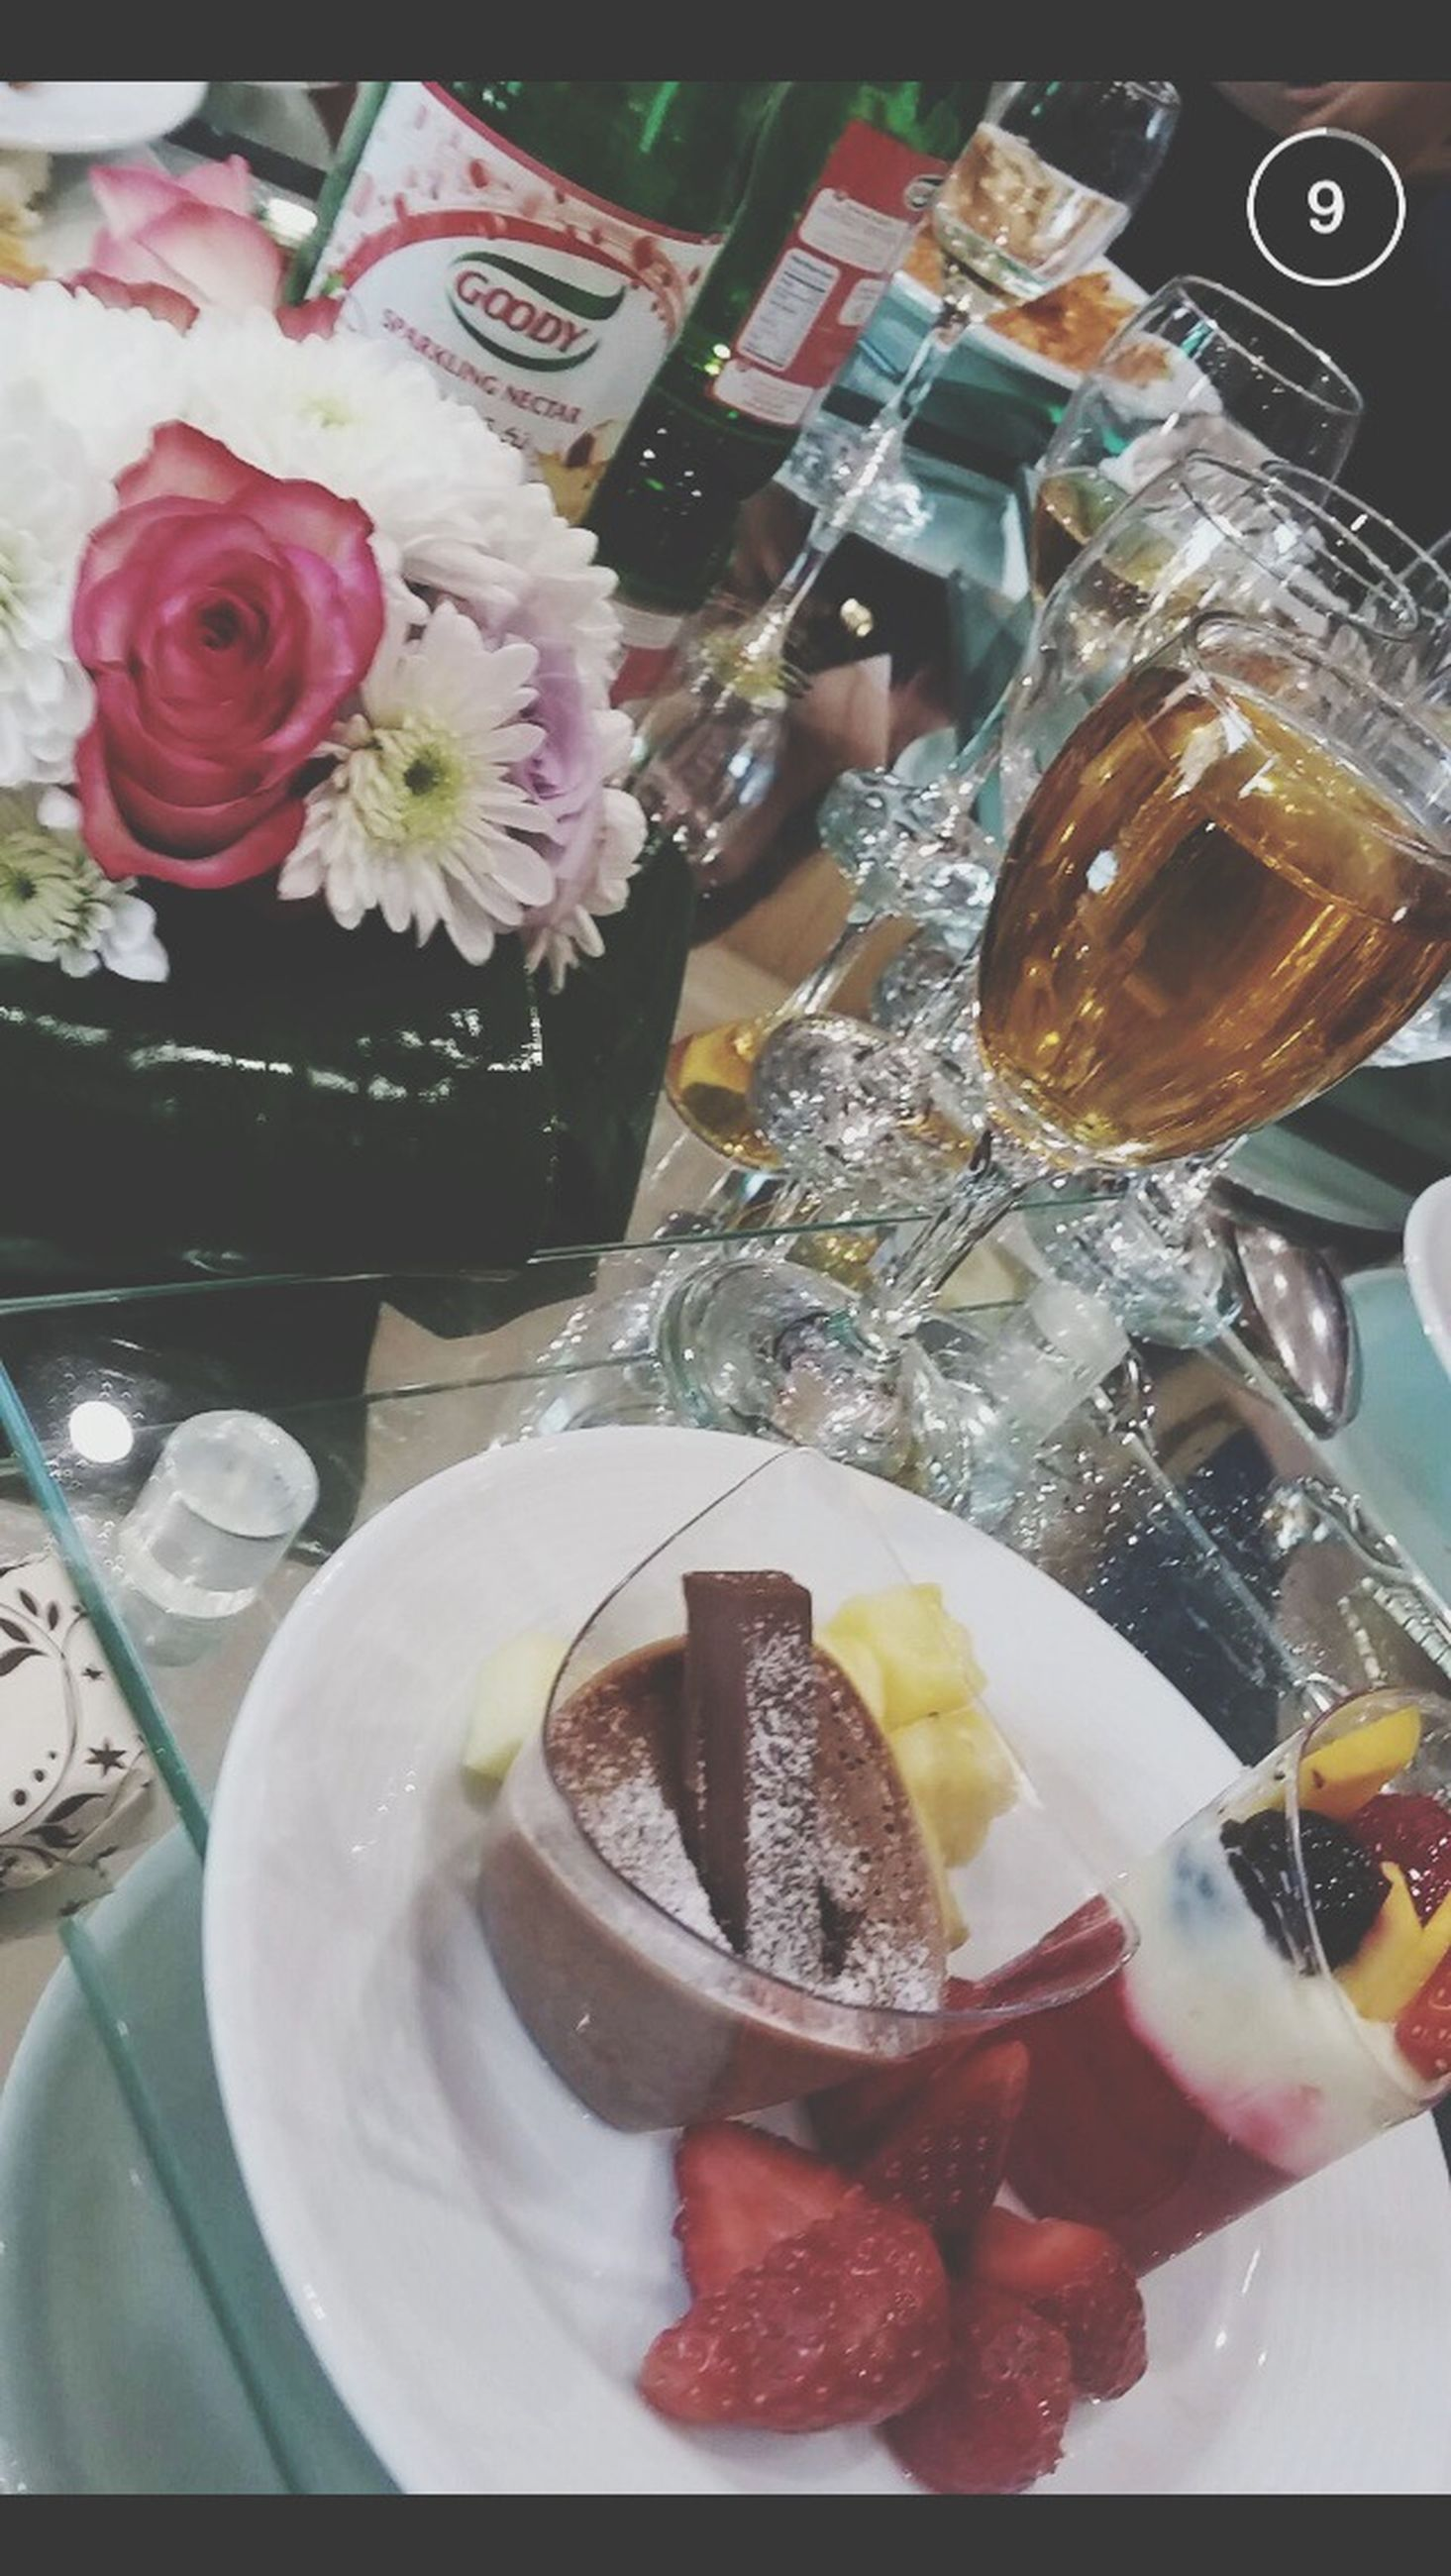 food and drink, freshness, food, indoors, sweet food, ready-to-eat, dessert, indulgence, plate, unhealthy eating, cake, temptation, table, still life, serving size, high angle view, chocolate, ice cream, close-up, strawberry